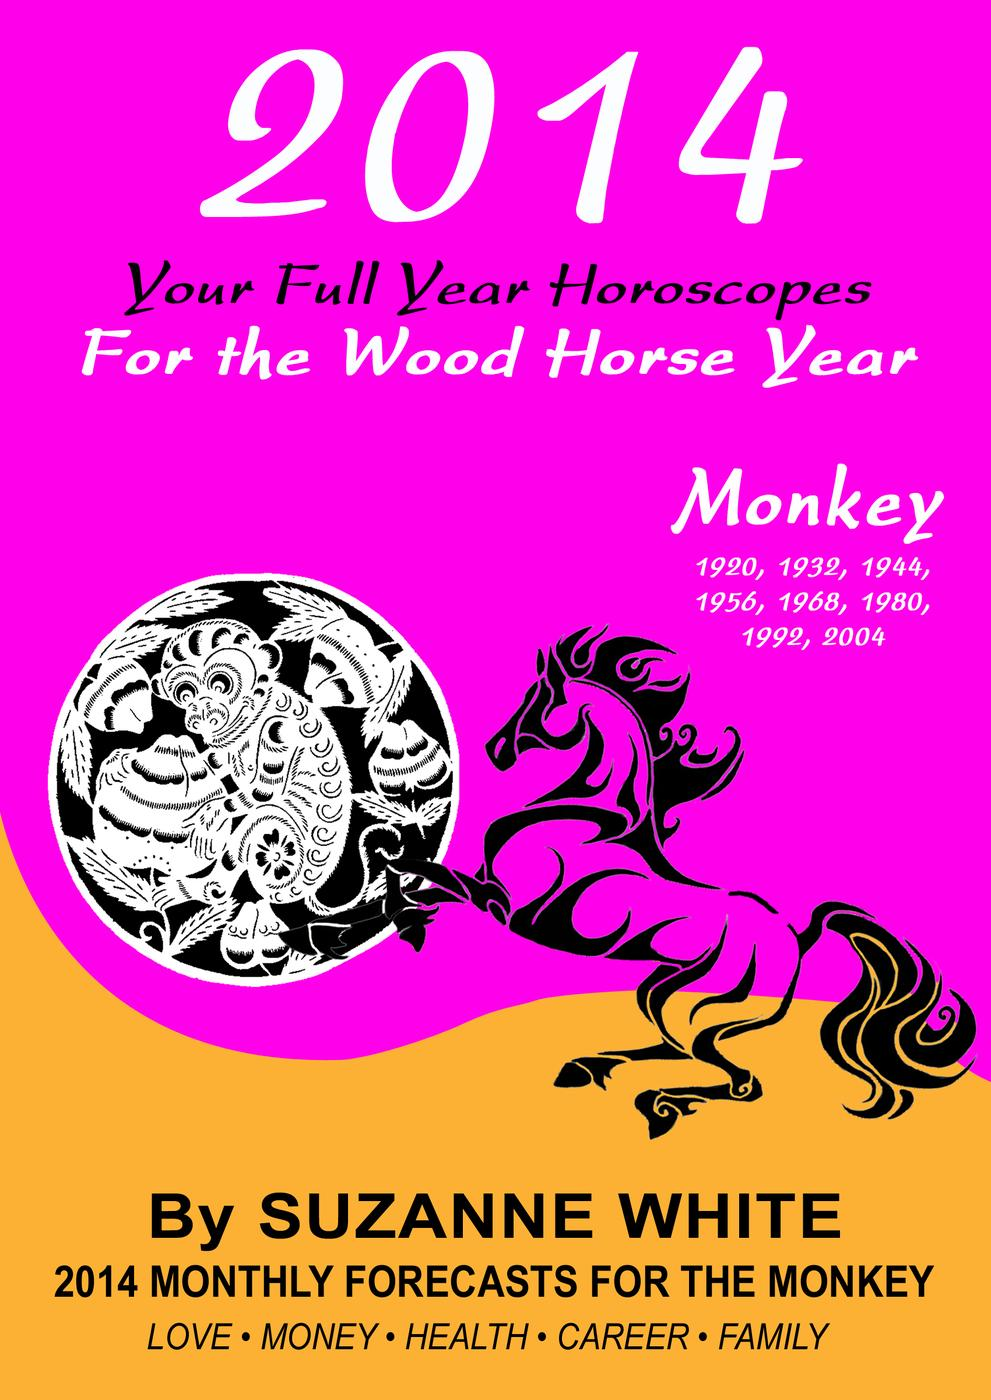 Suzanne White - 2014 MONKEY Your Full Year Horoscopes  For The Wood Horse Year